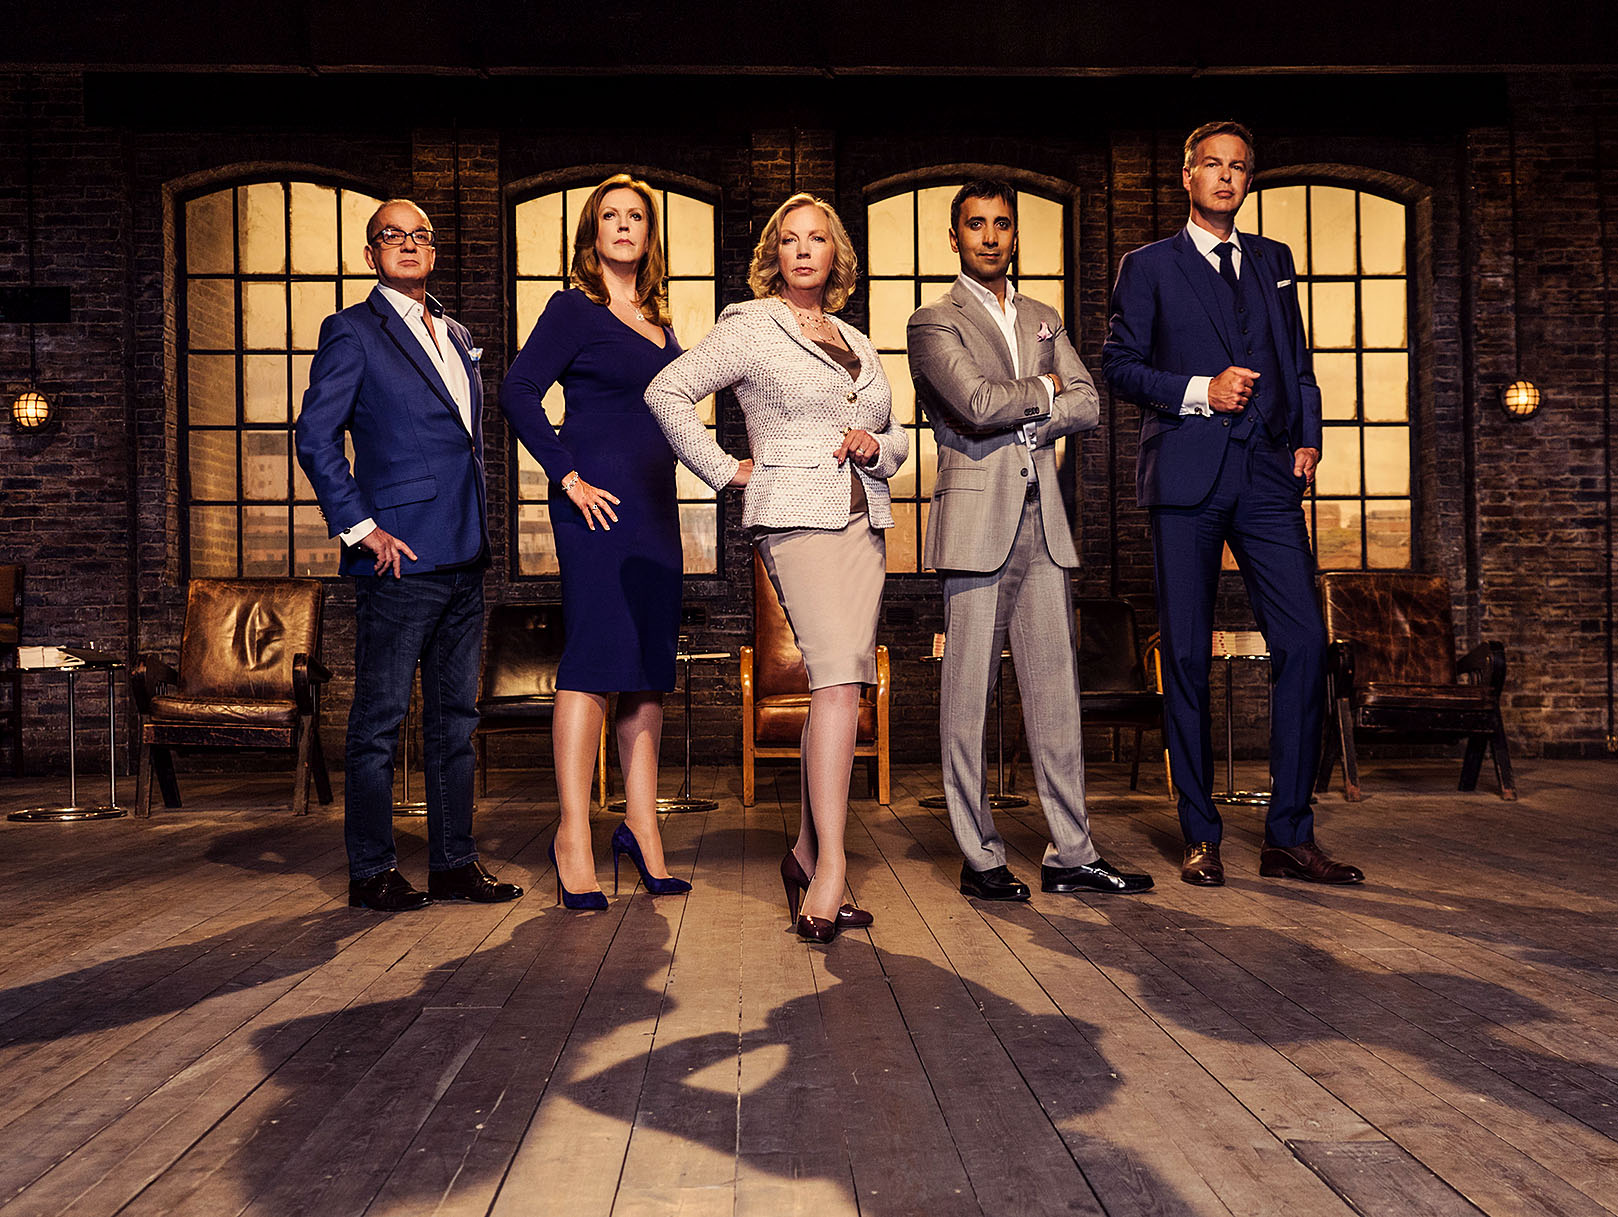 Dragons' Den versus real-life angels - Brought to you by NatWest